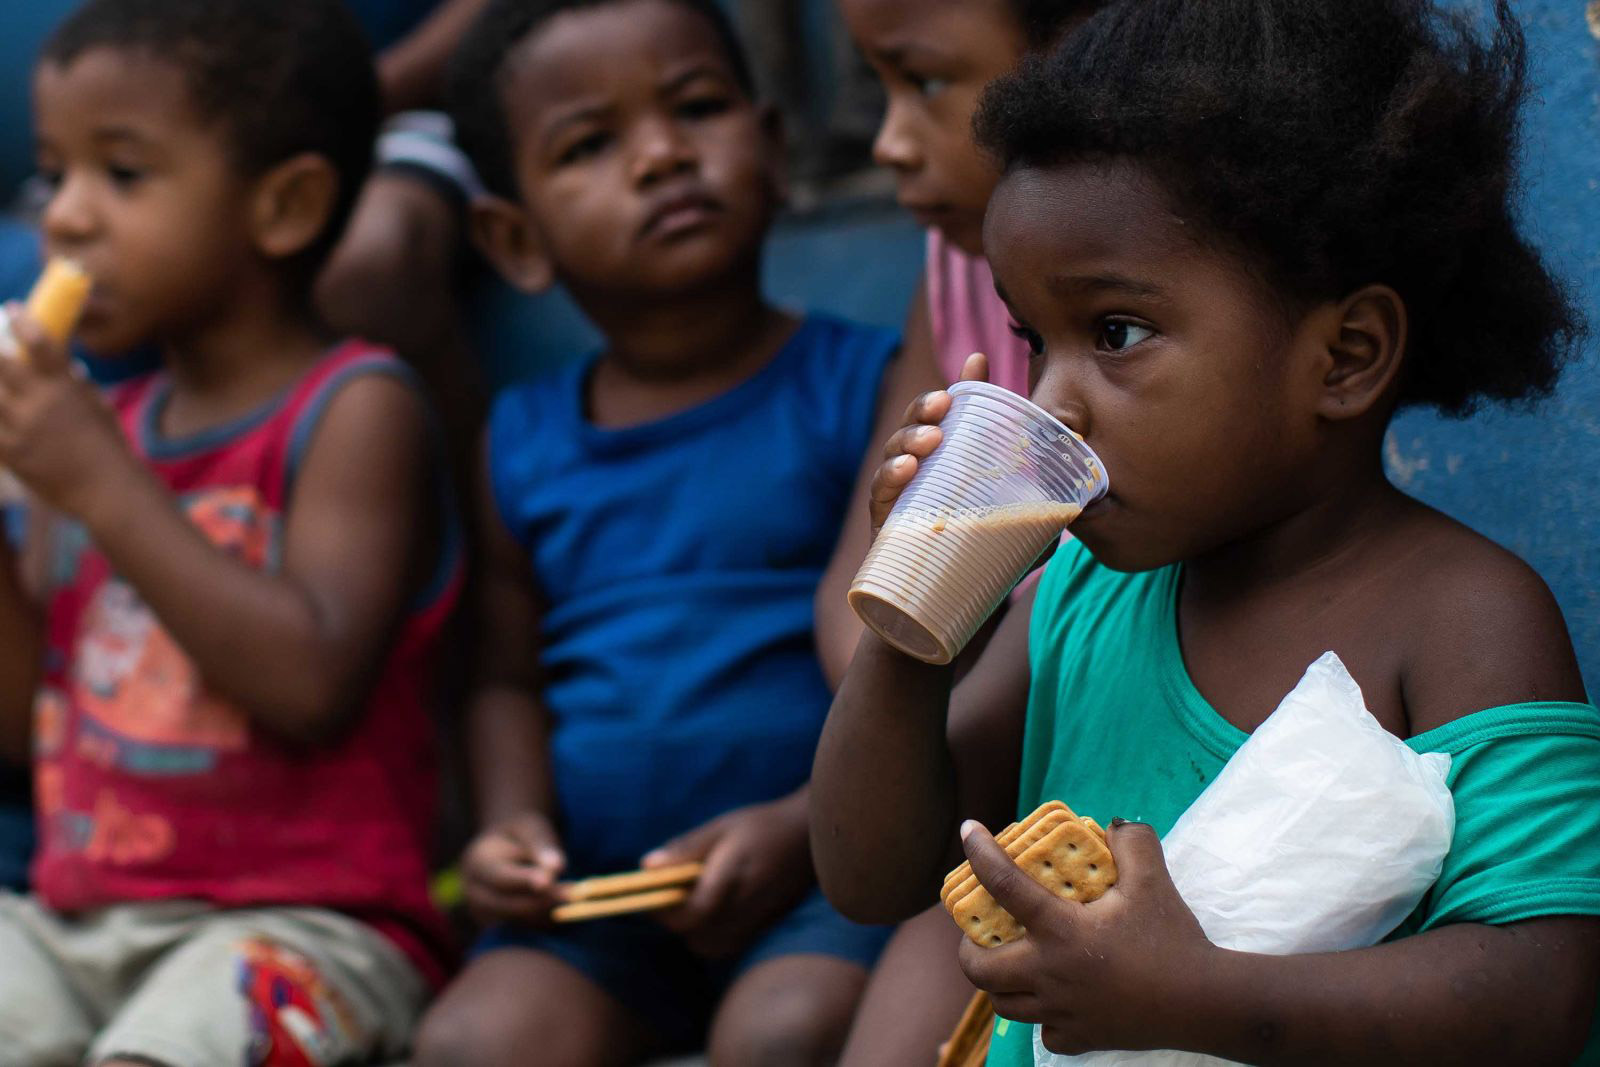 Children eat breakfast during food distribution in Rio de Janeiro, Brazil, on May 24.